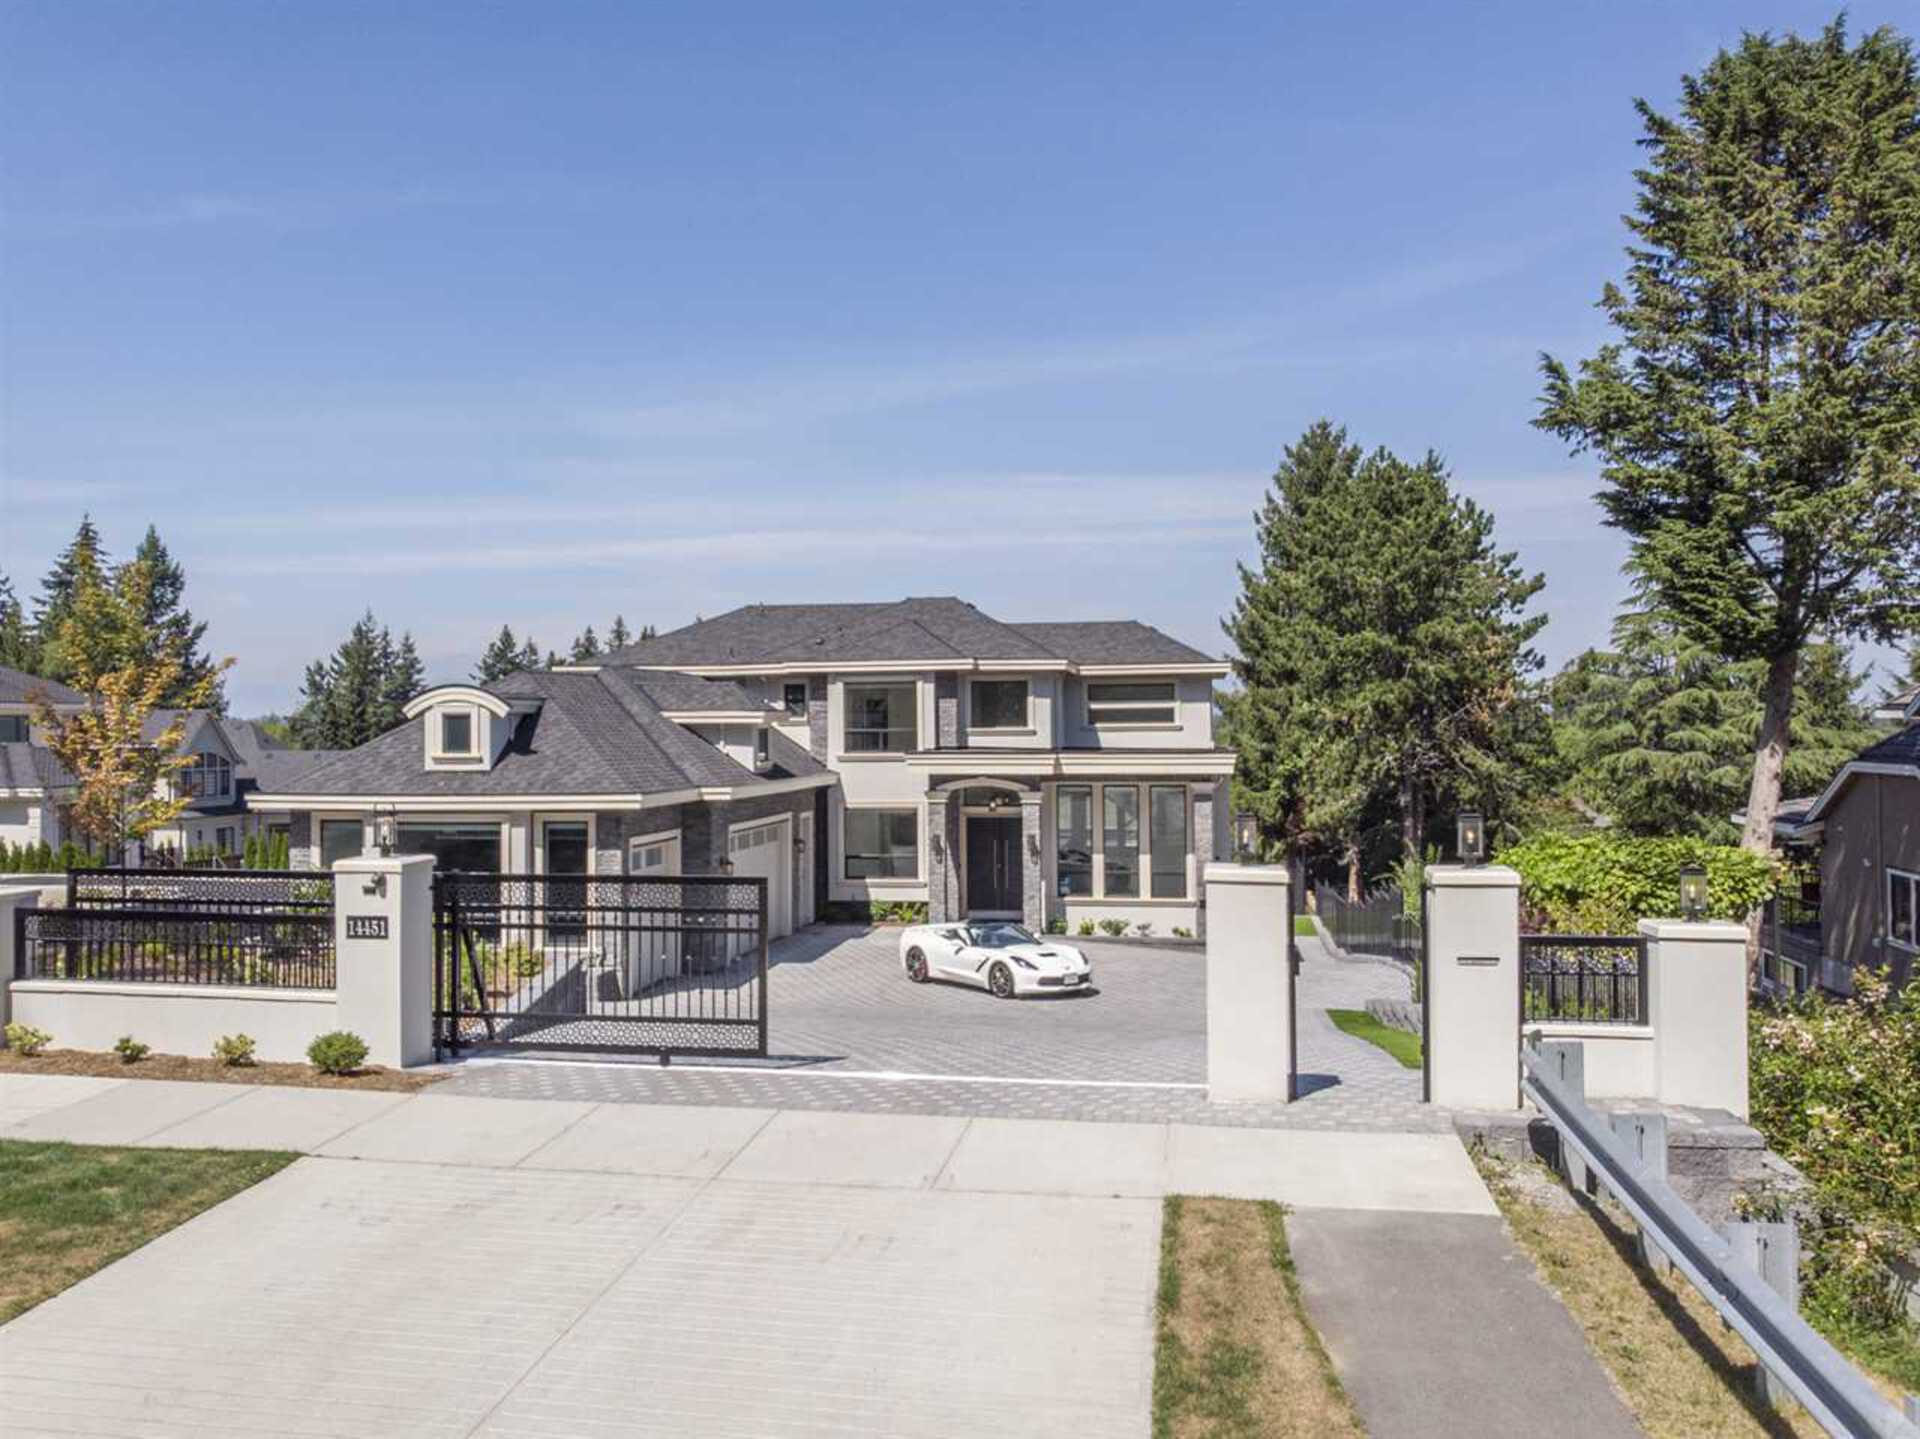 14451-28-avenue-elgin-chantrell-south-surrey-white-rock-05 at 14451 28 Avenue, Elgin Chantrell, South Surrey White Rock